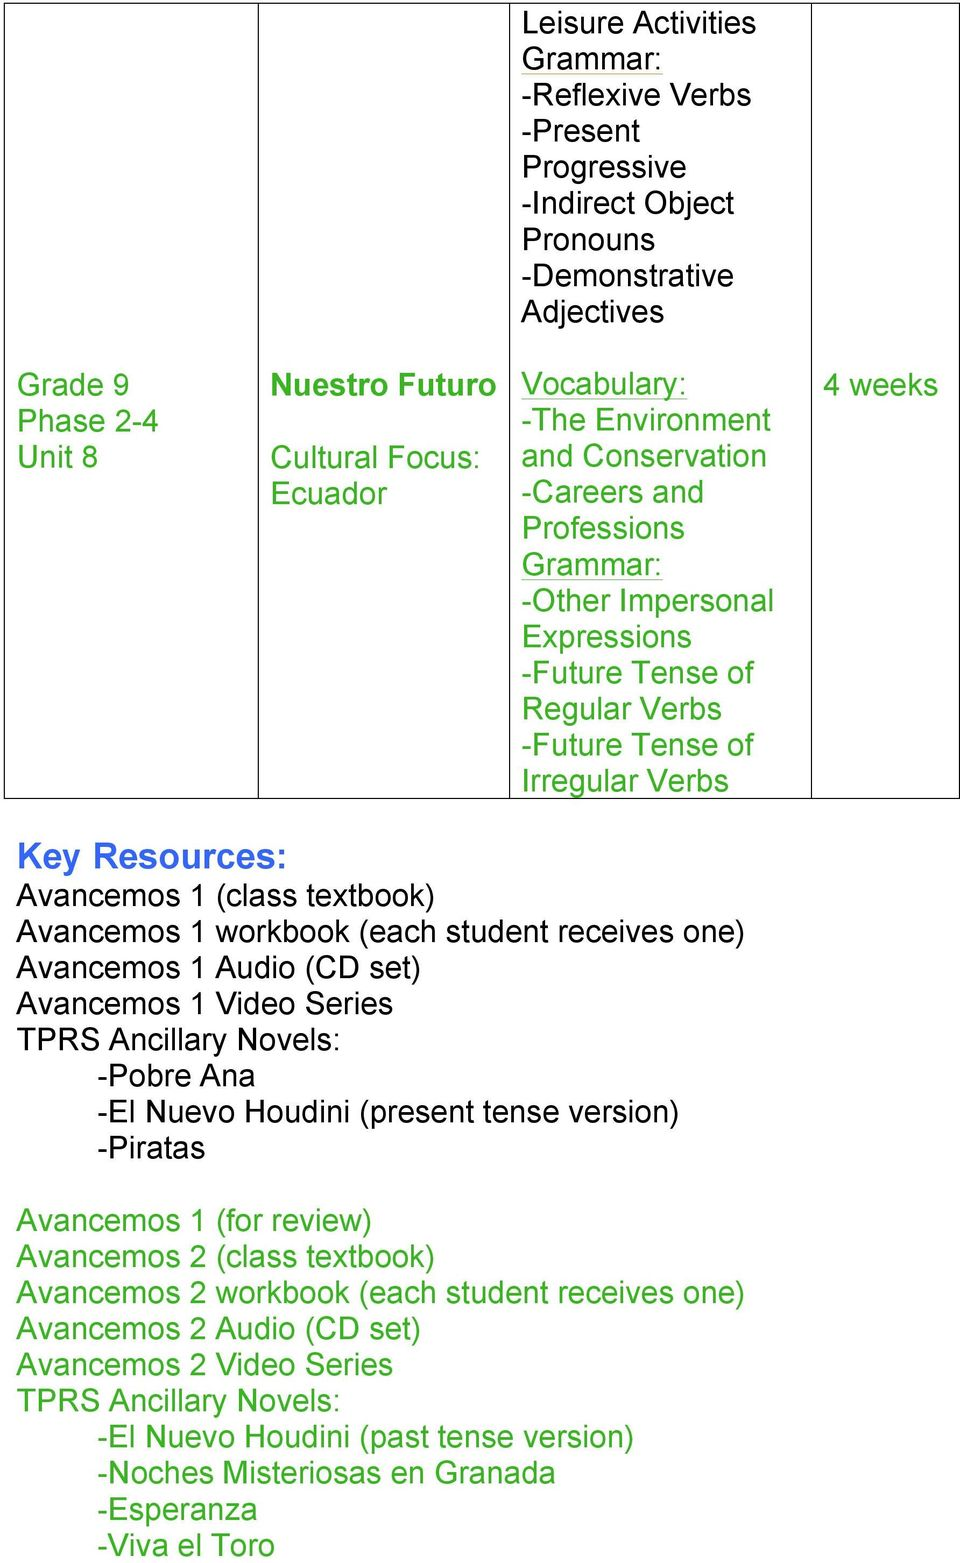 set) Avancemos 1 Video Series TPRS Ancillary Novels: -Pobre Ana -El Nuevo Houdini (present tense version) -Piratas Avancemos 1 (for review) Avancemos 2 (class textbook) Avancemos 2 workbook